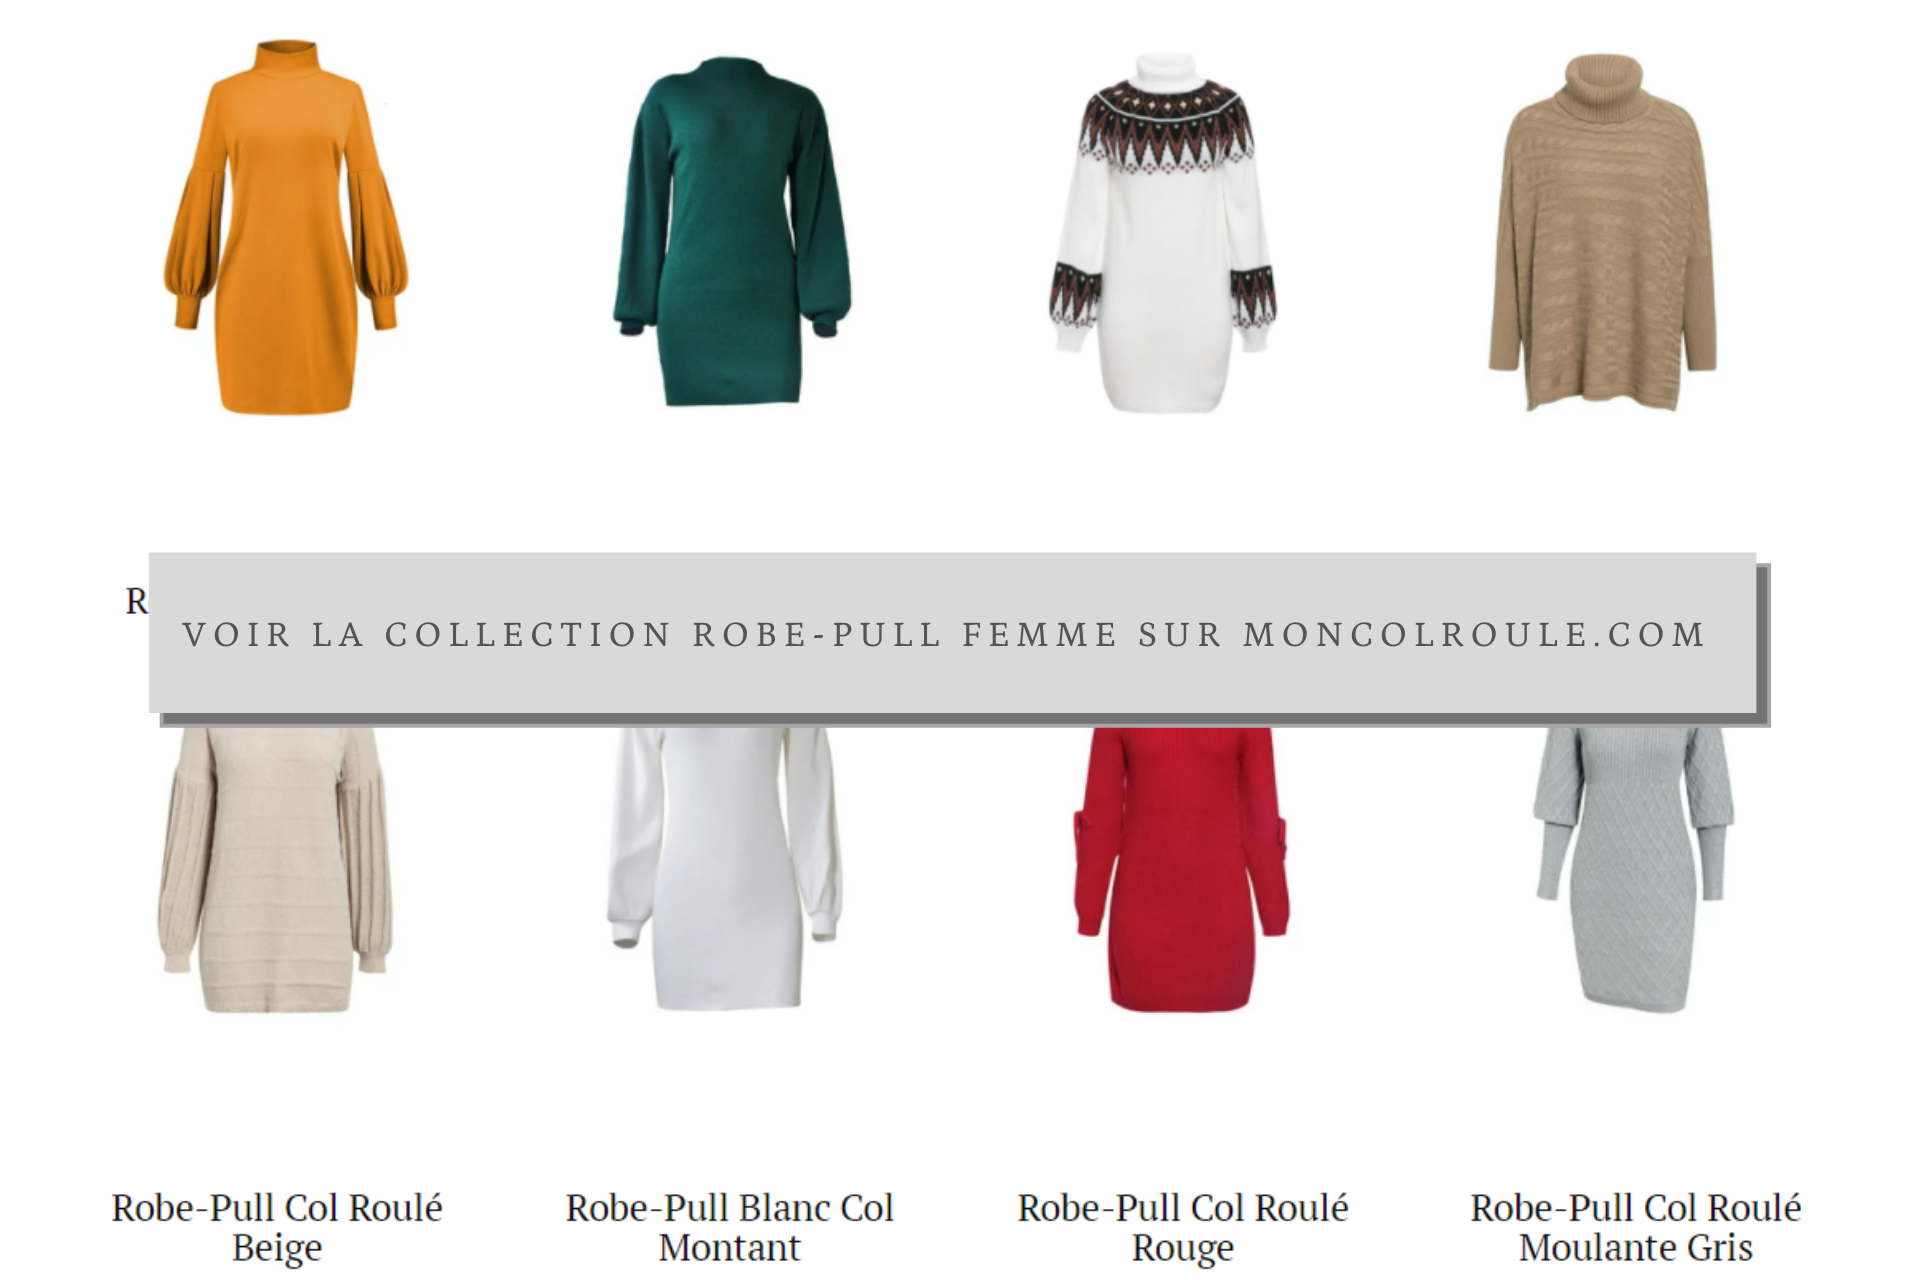 Collection Robe-Pull Col Roulé Femme